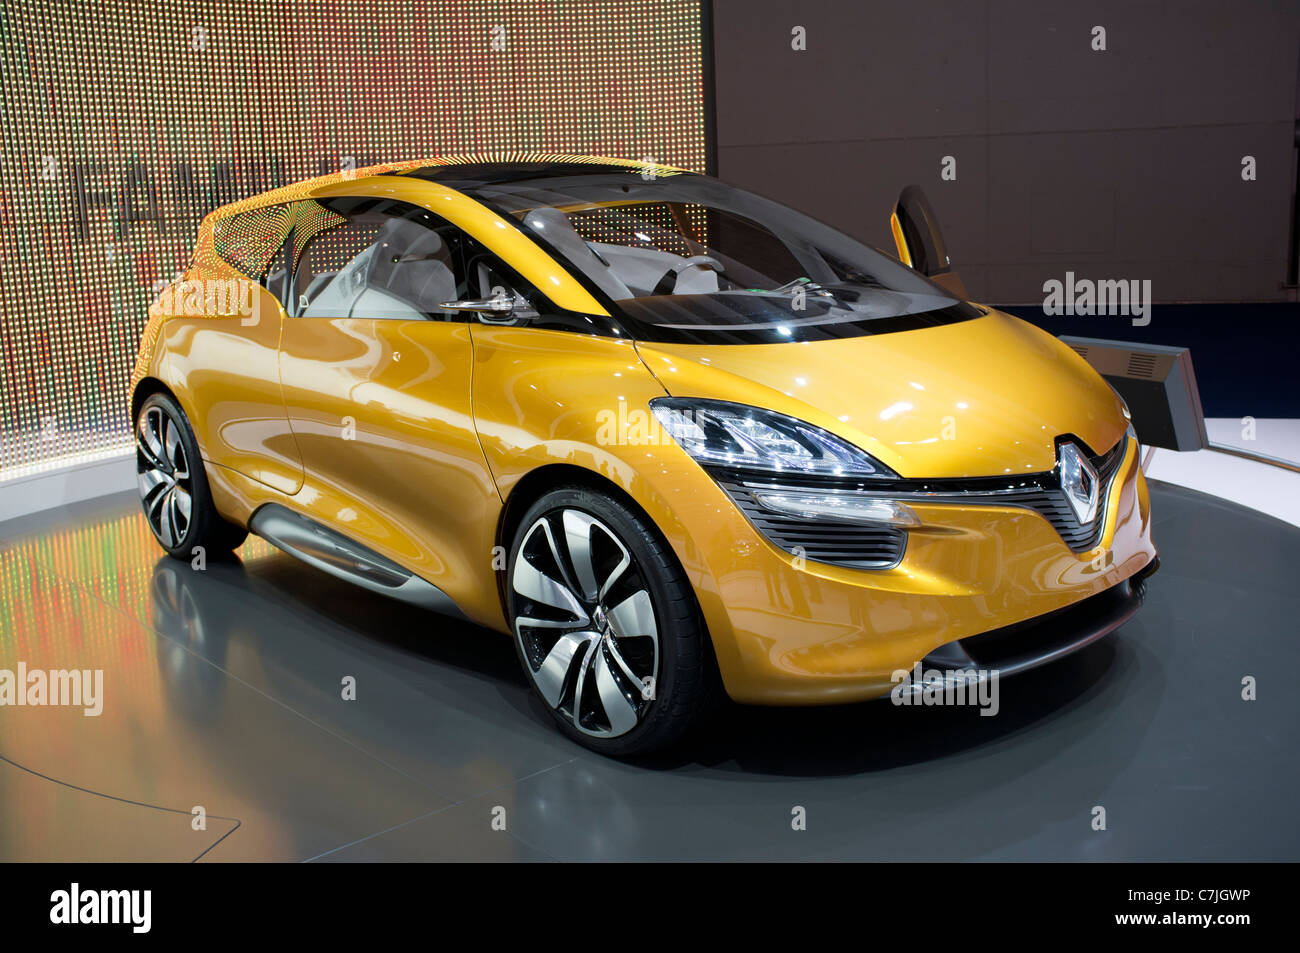 Renault R-SPace concept car at Frankfurt Motor Show or IAA 2011 in Germany - Stock Image